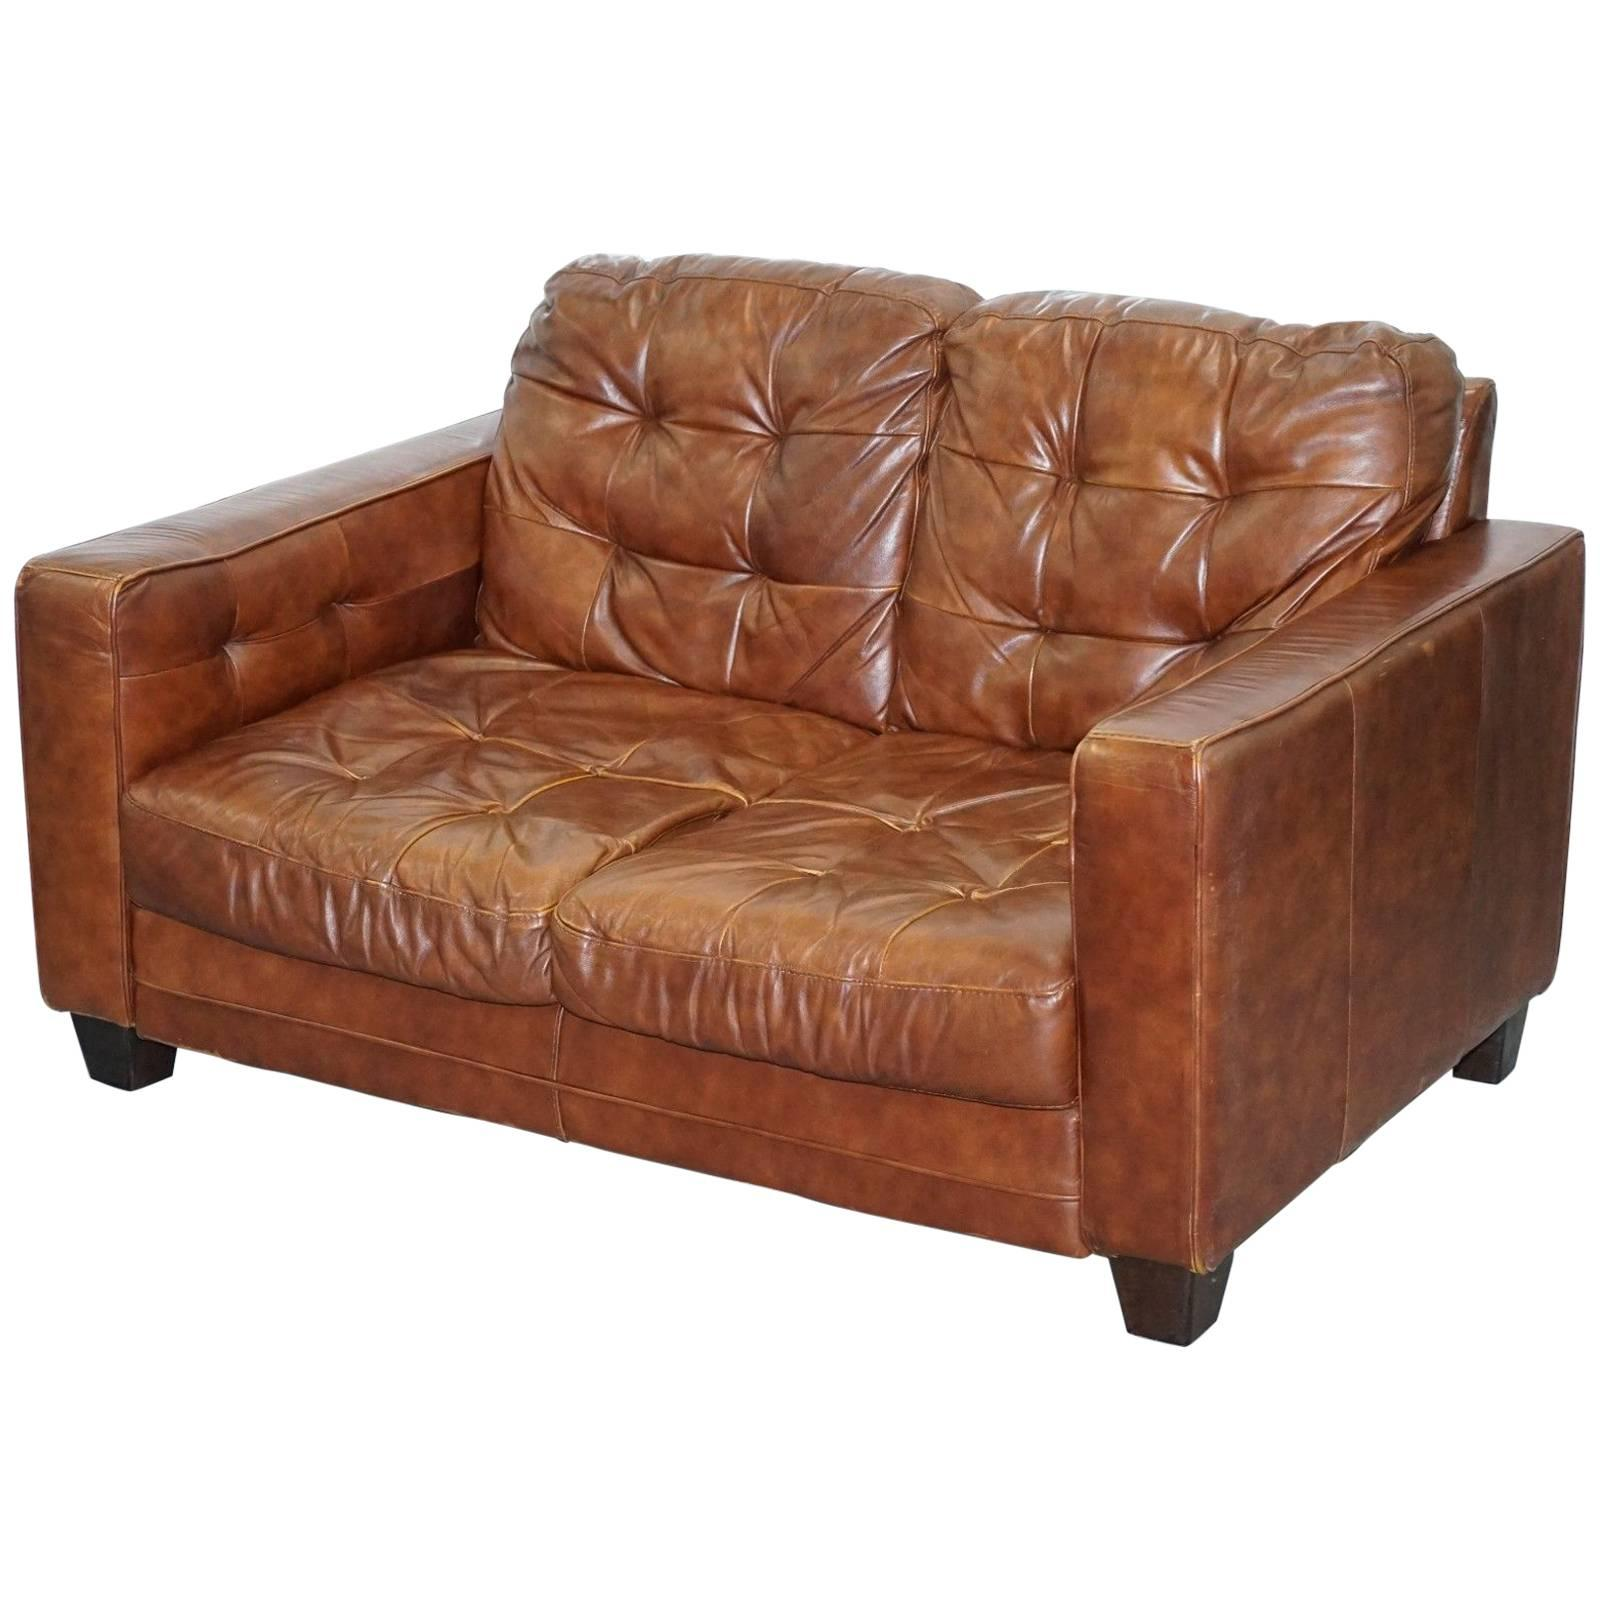 knoll style aged brown leather sofa chesterfield style buttoning two rh 1stdibs com aged tan leather sofa aged leather sofa sale